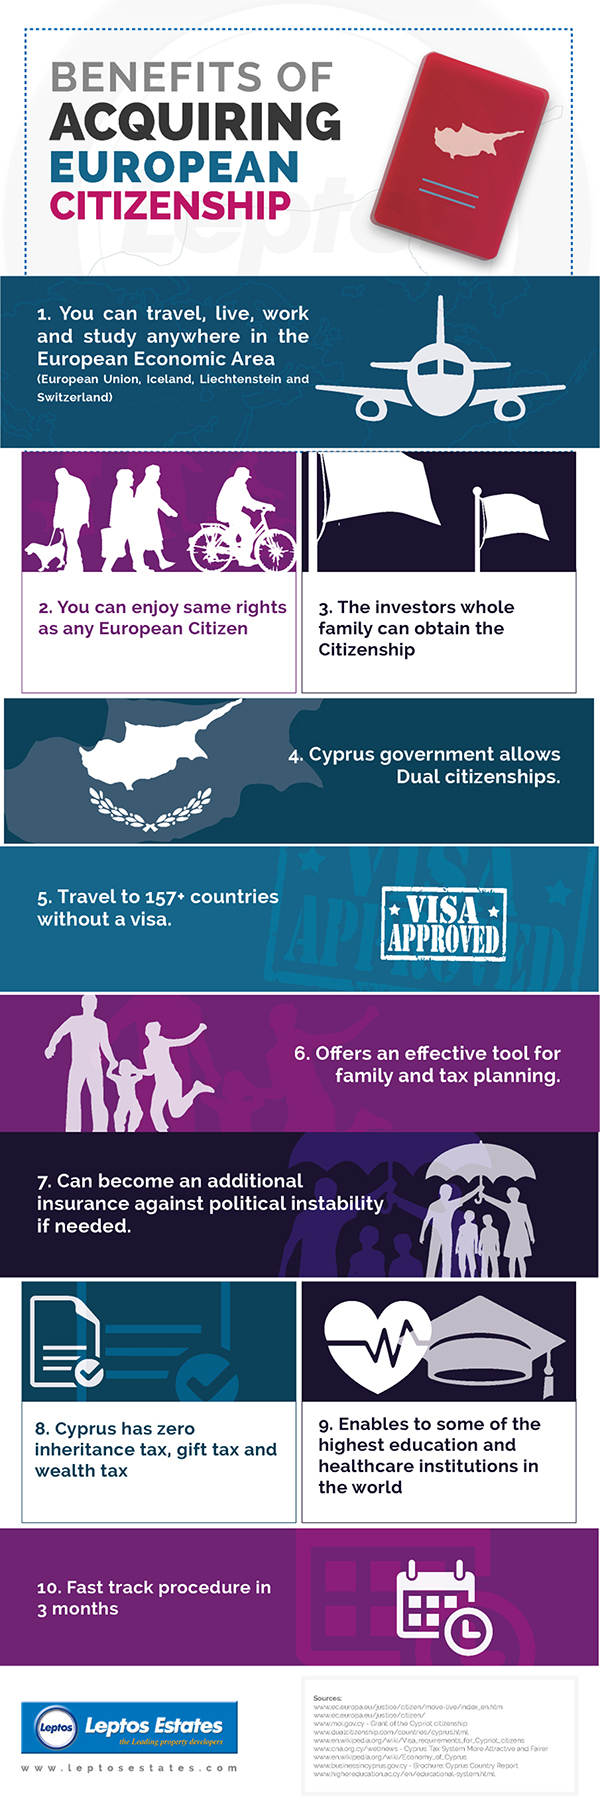 Benefits of Acquiring Cyprus Citizenship